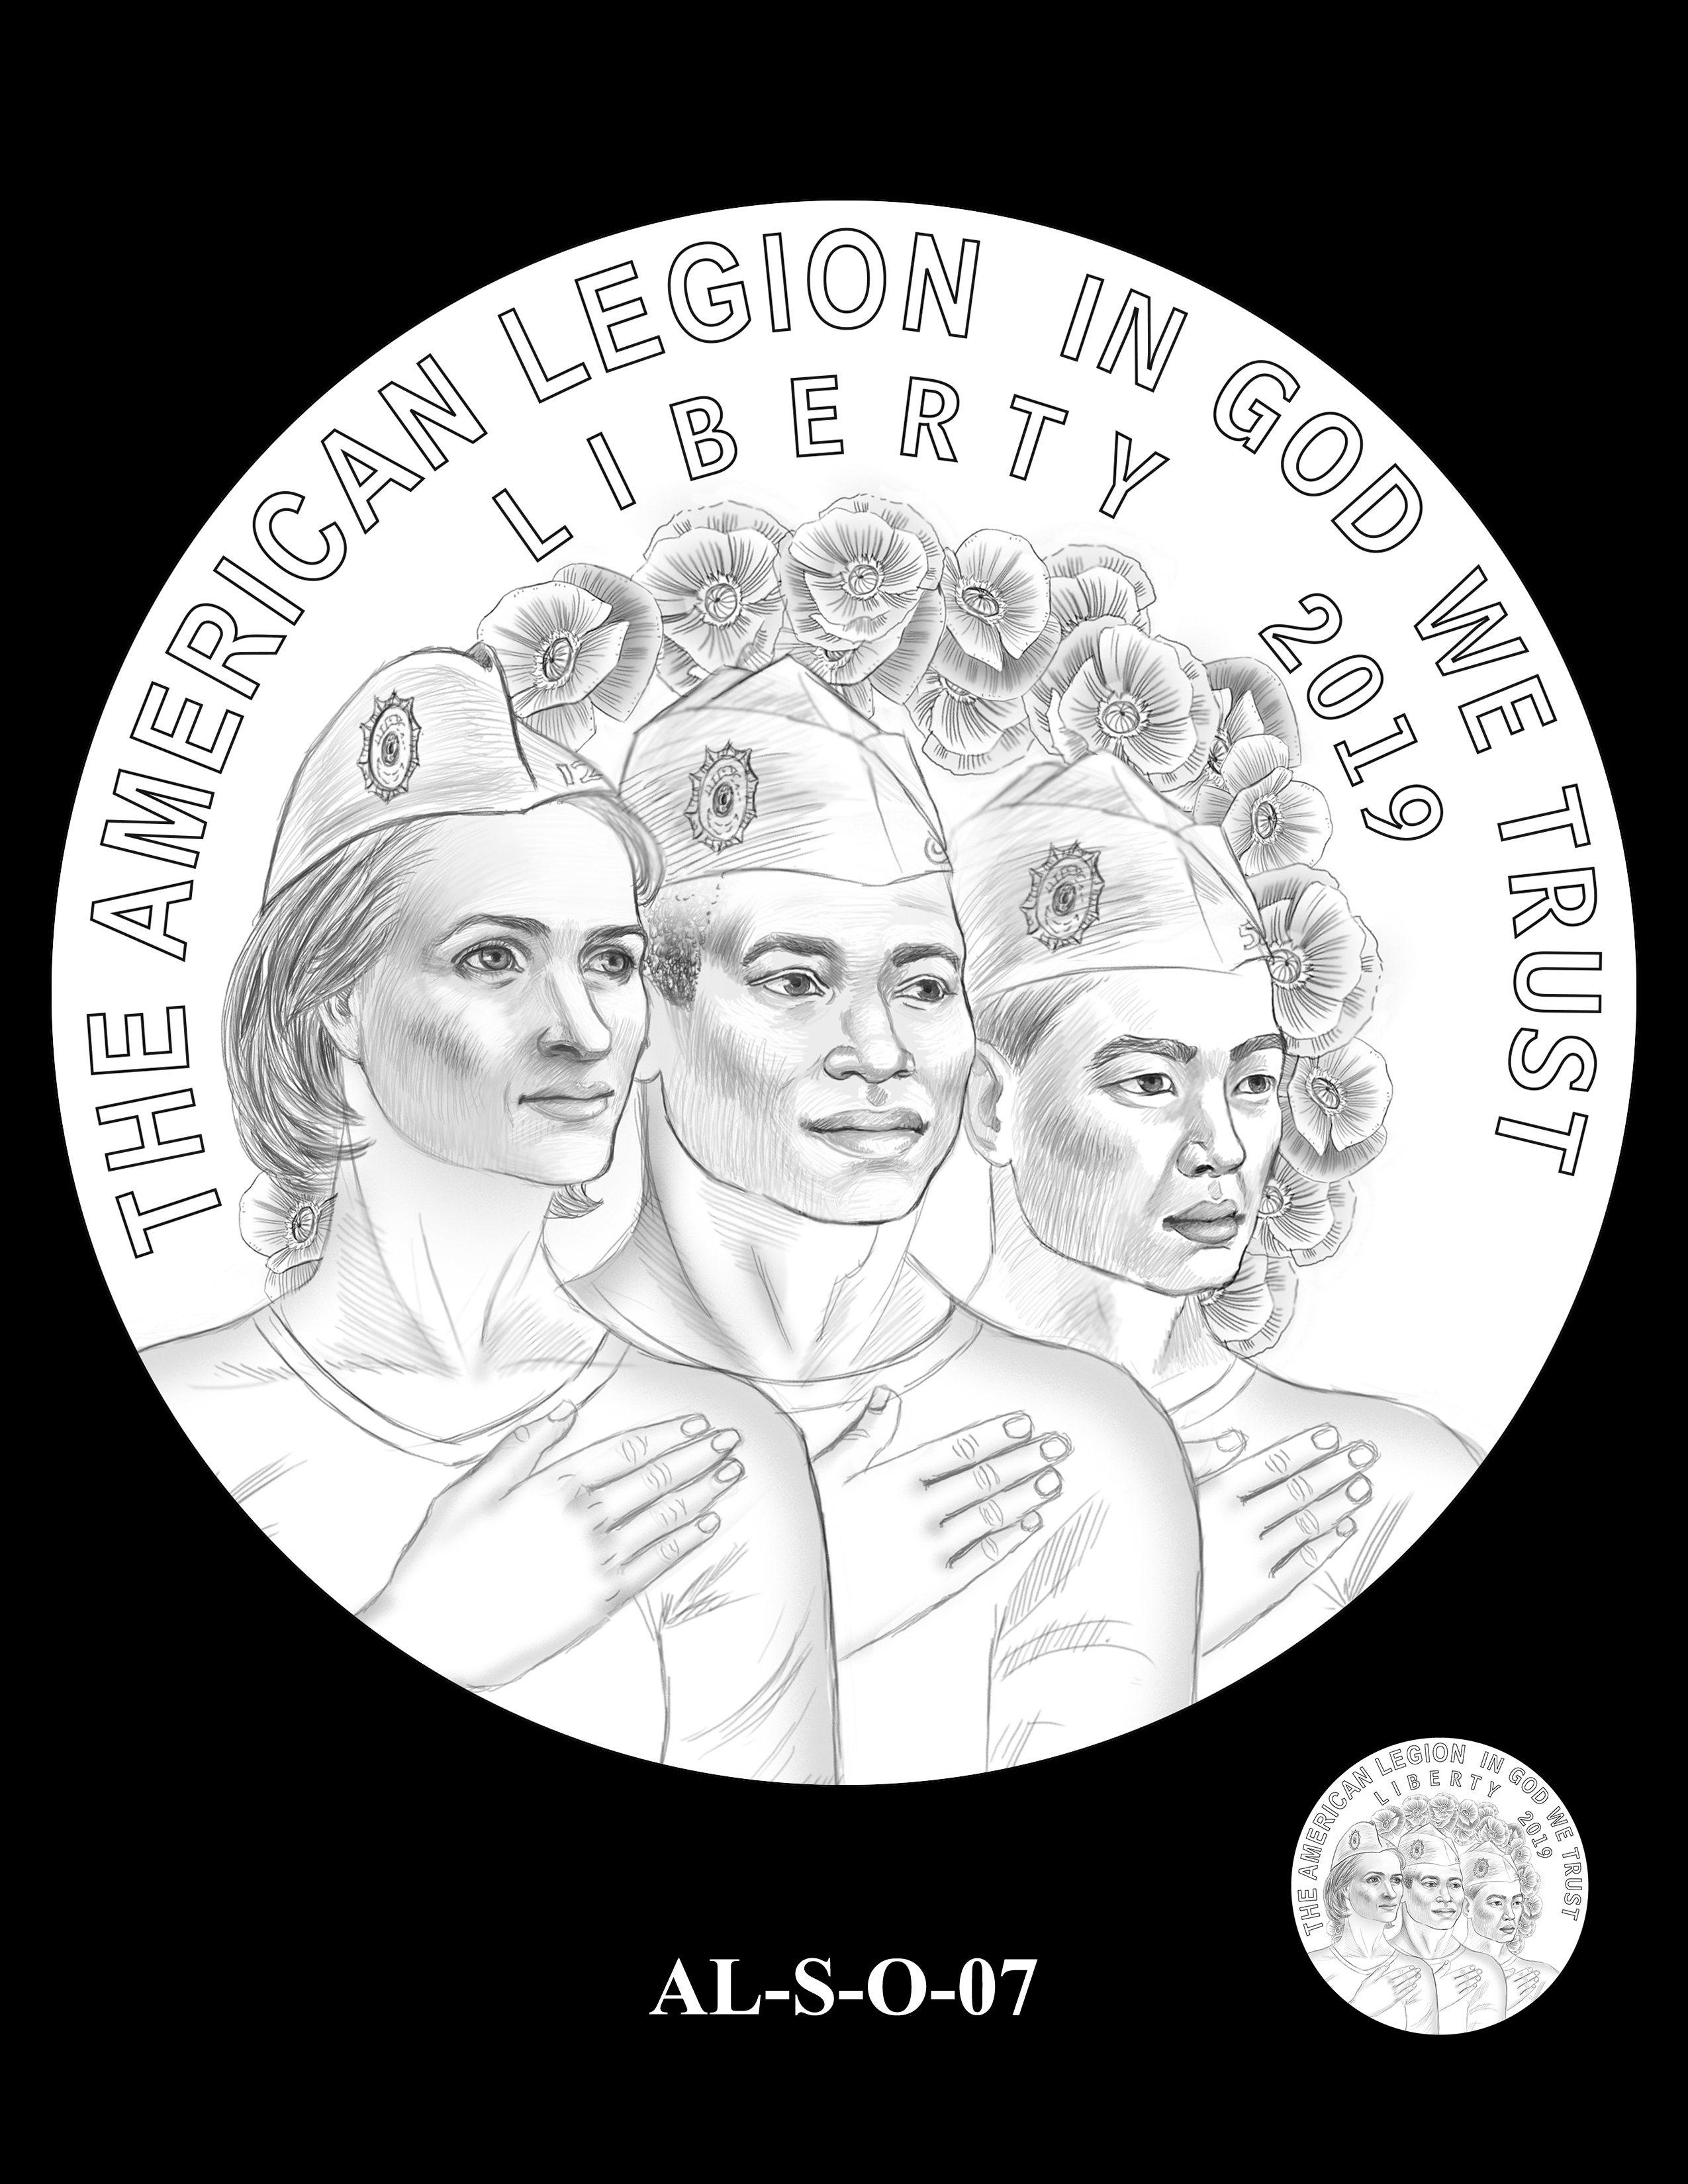 AL-S-O-07 -- 2019 American Legion 100th Anniversary Commemorative Coin Program - Silver Obverse